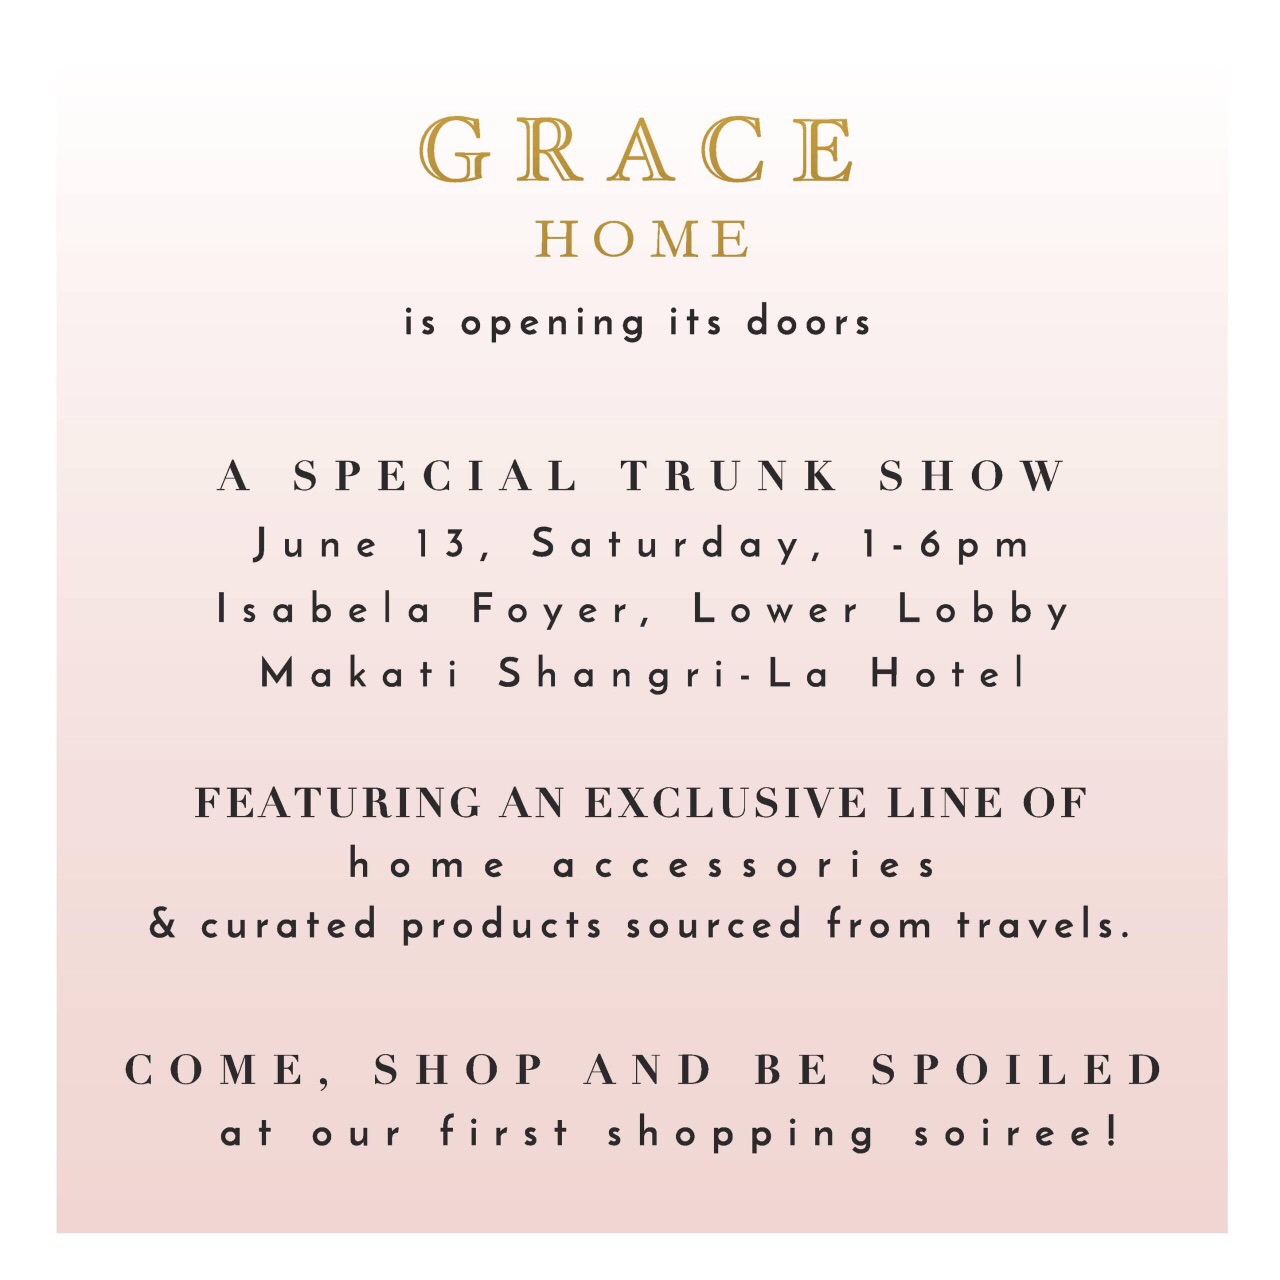 Grace-Home-Trunk-Show-Invite